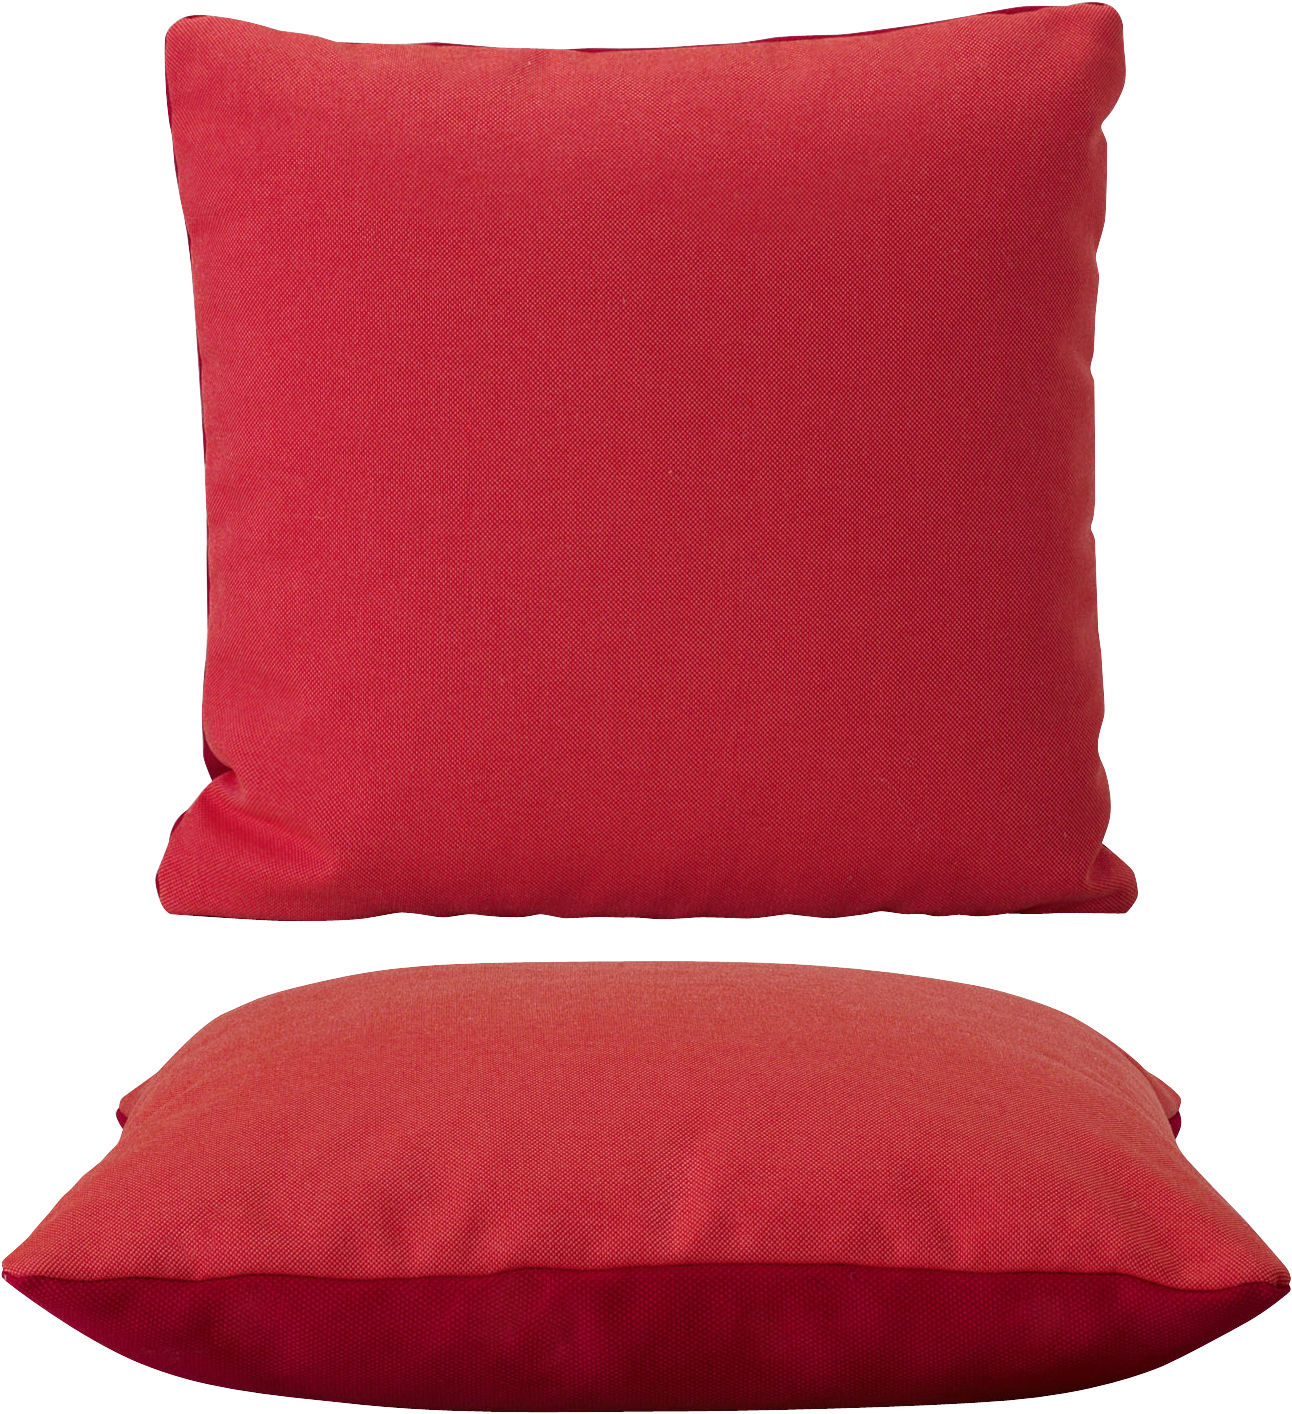 coussin mingle carr large 60 x 60 cm rouge bordeaux rouge n on muuto. Black Bedroom Furniture Sets. Home Design Ideas